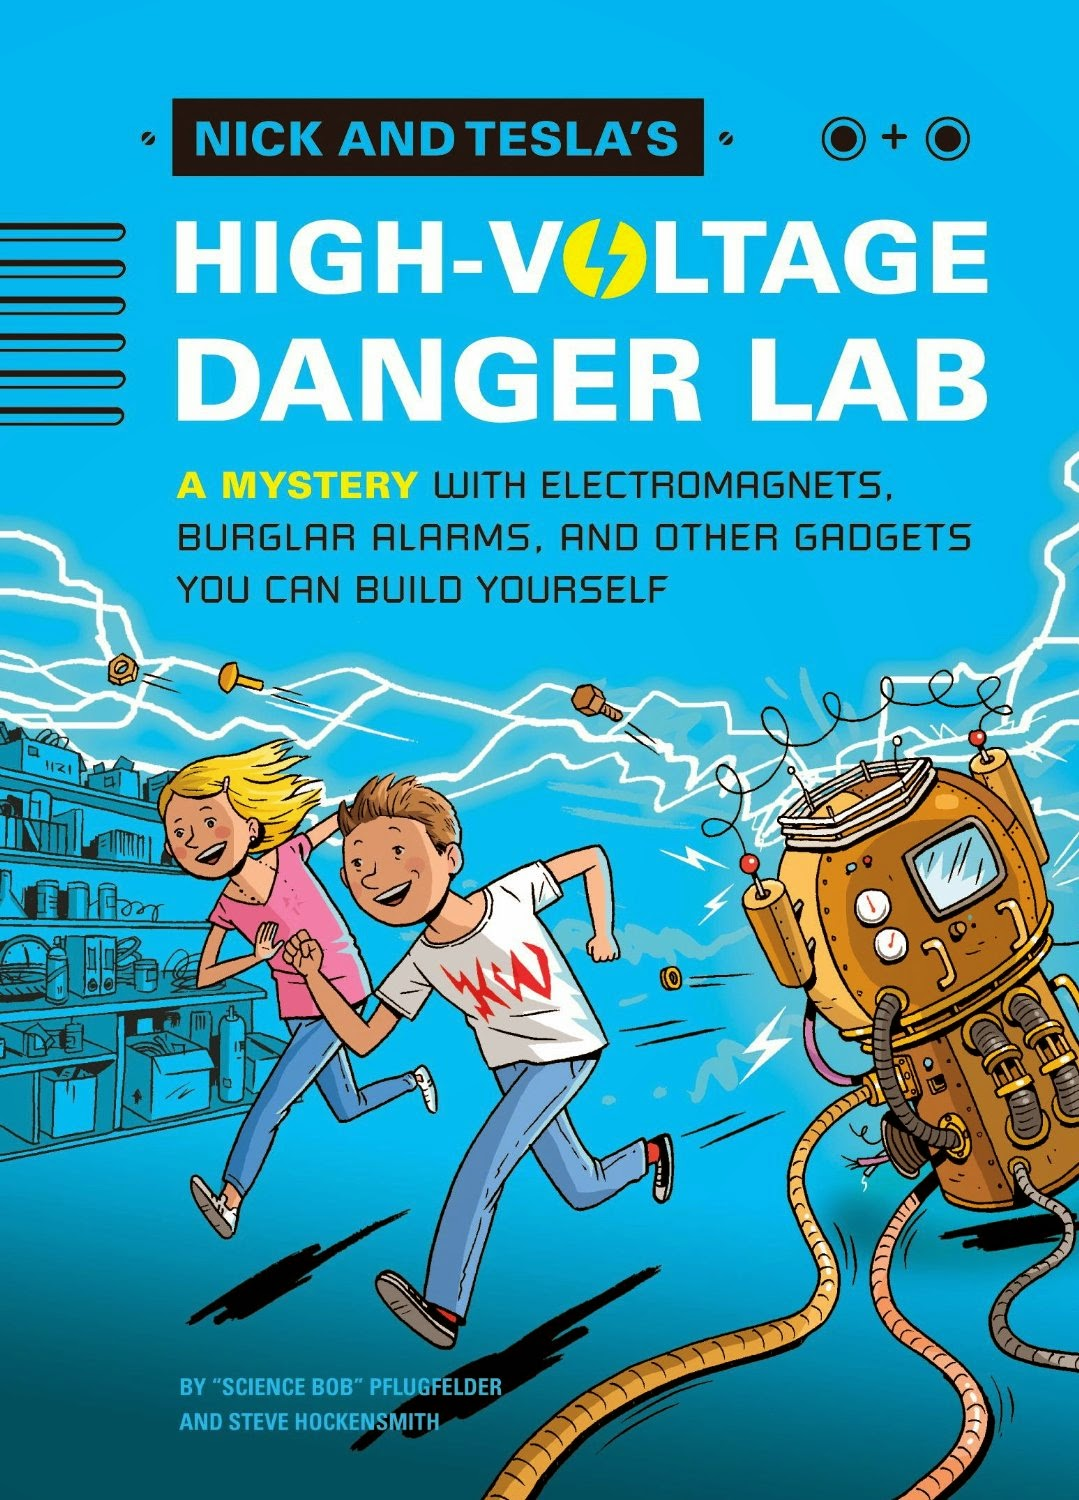 Nick and Testa's science project mysteries are winners. First in the series is High Voltage Danger Lab